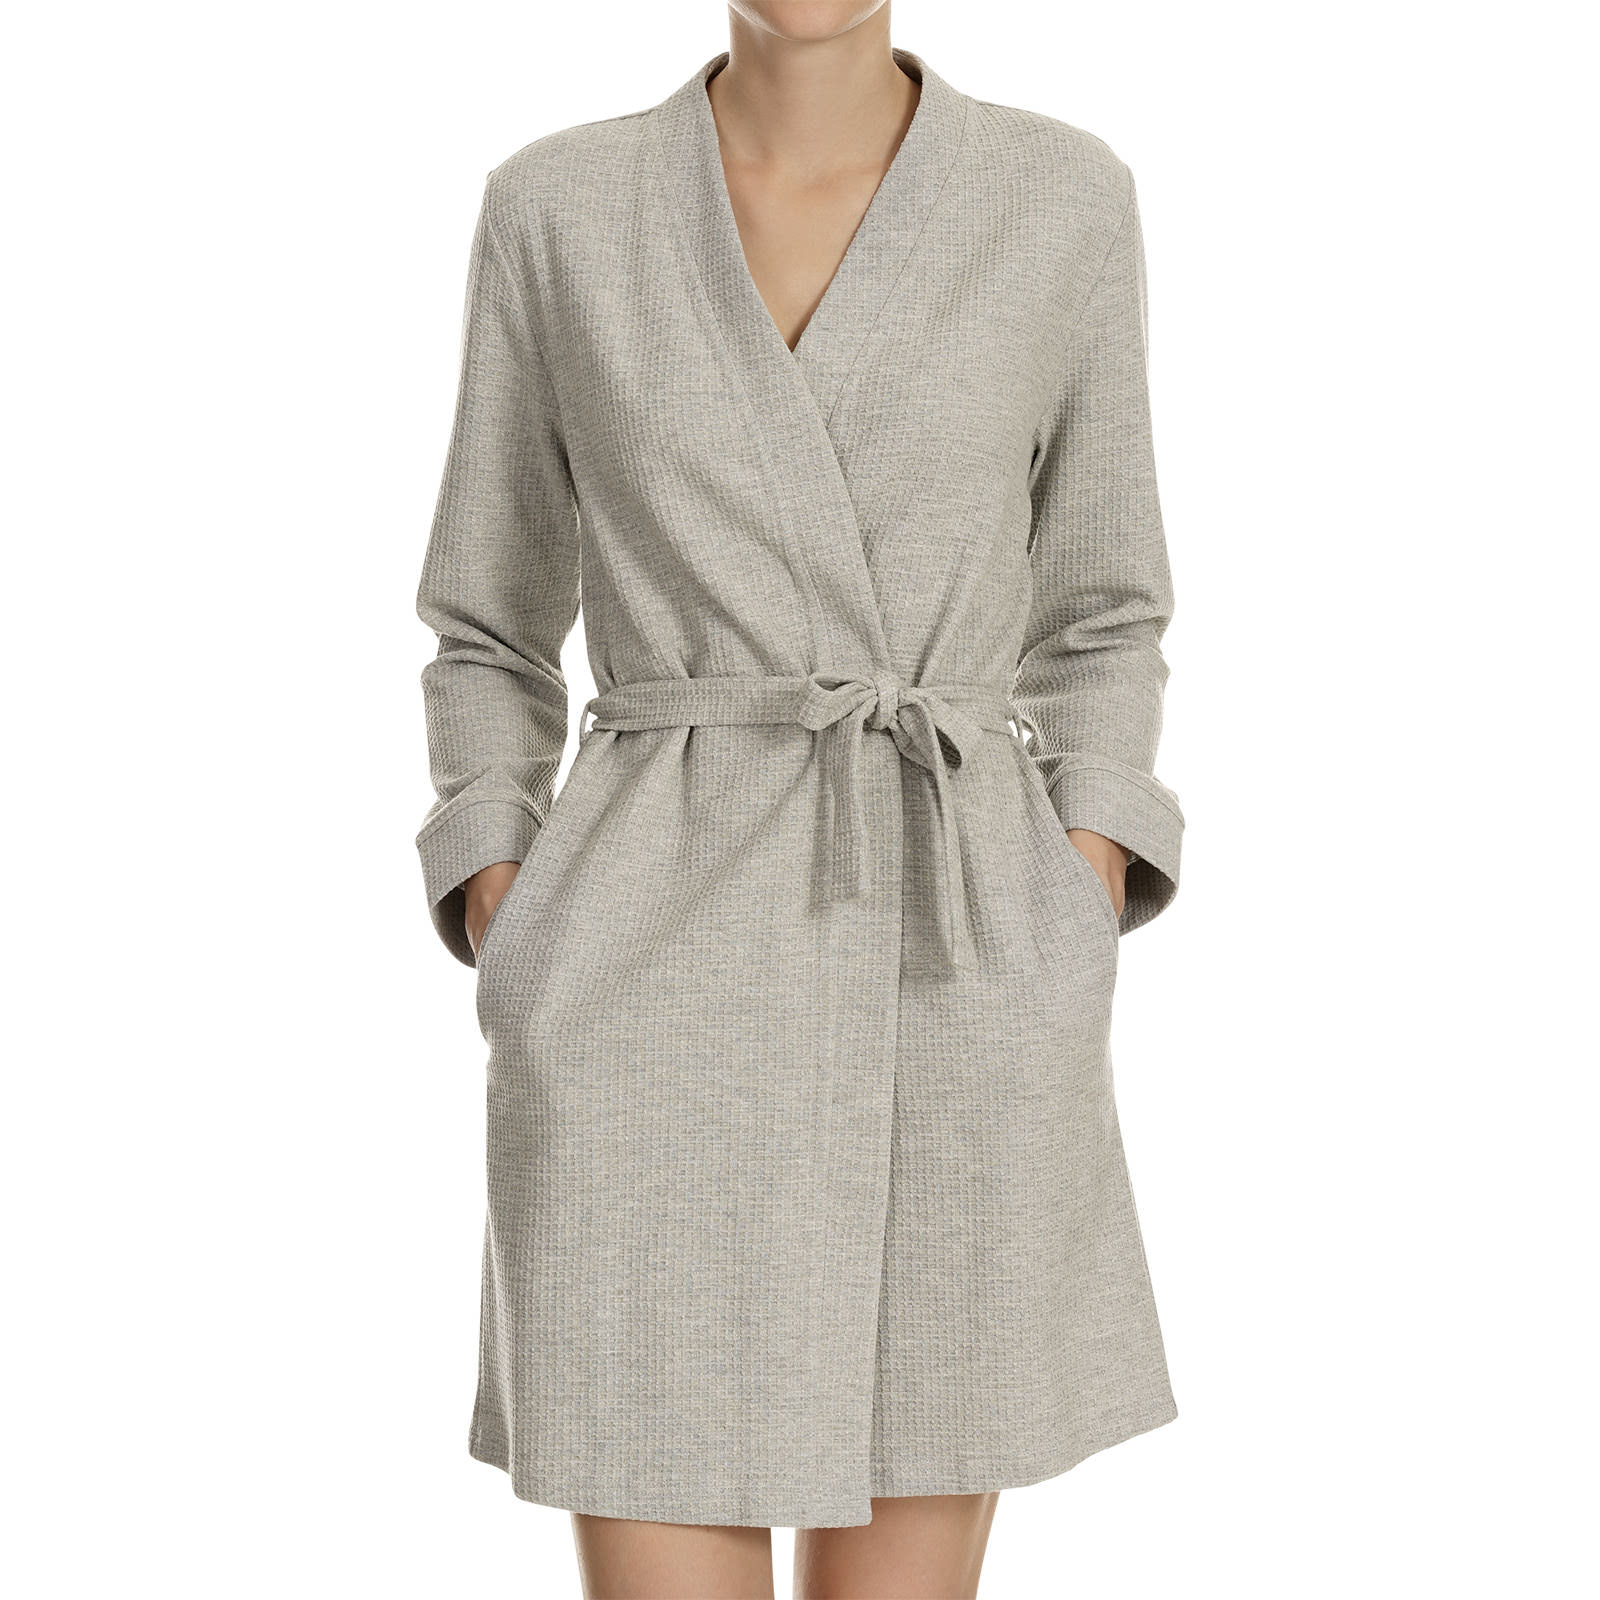 Bademantel Grau Bademantel Robe In Grau Mélange Loungewear